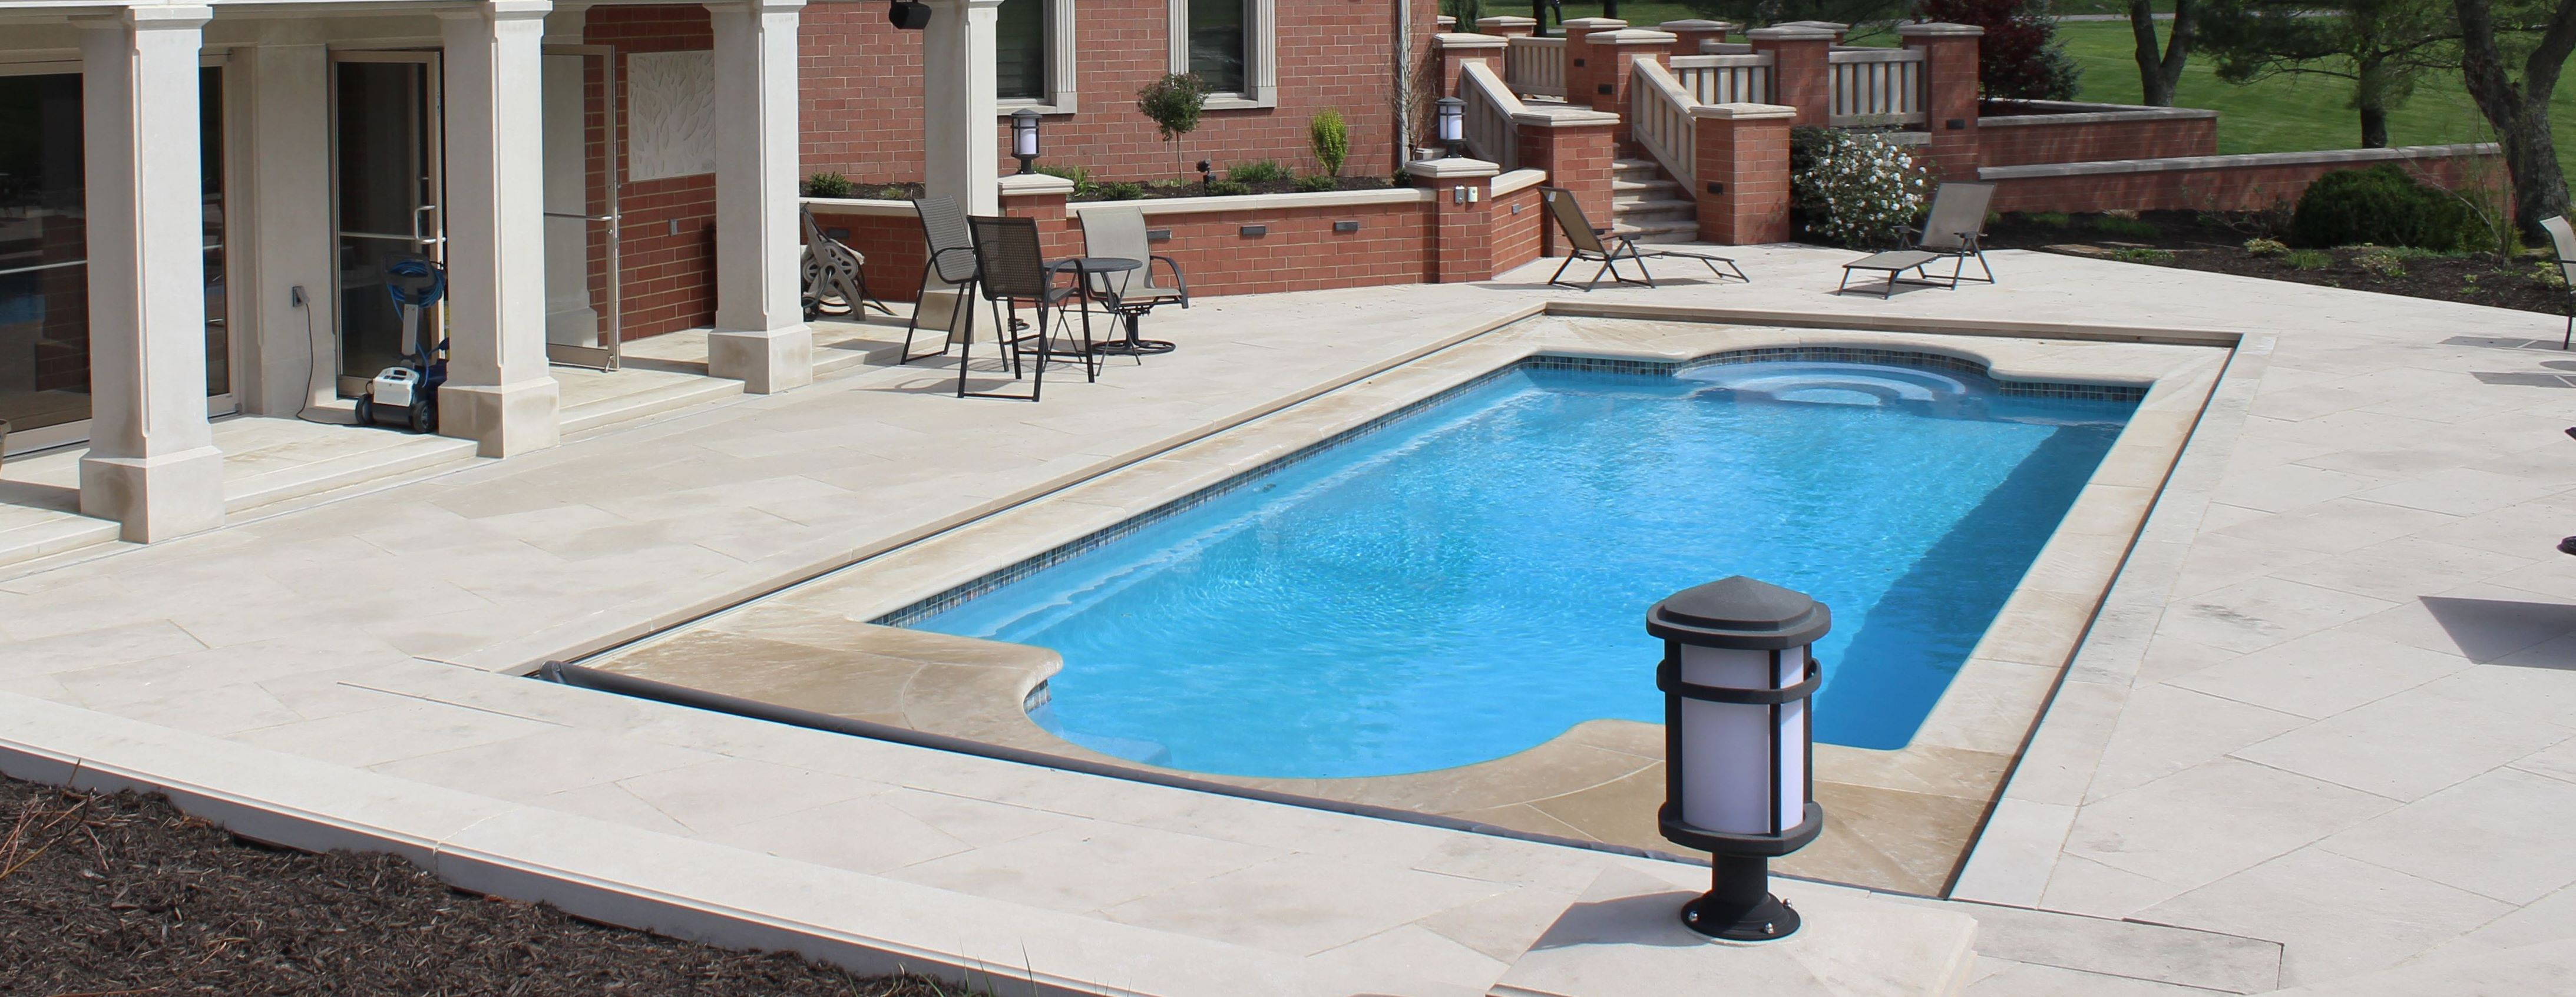 Pavers and Pool Coping